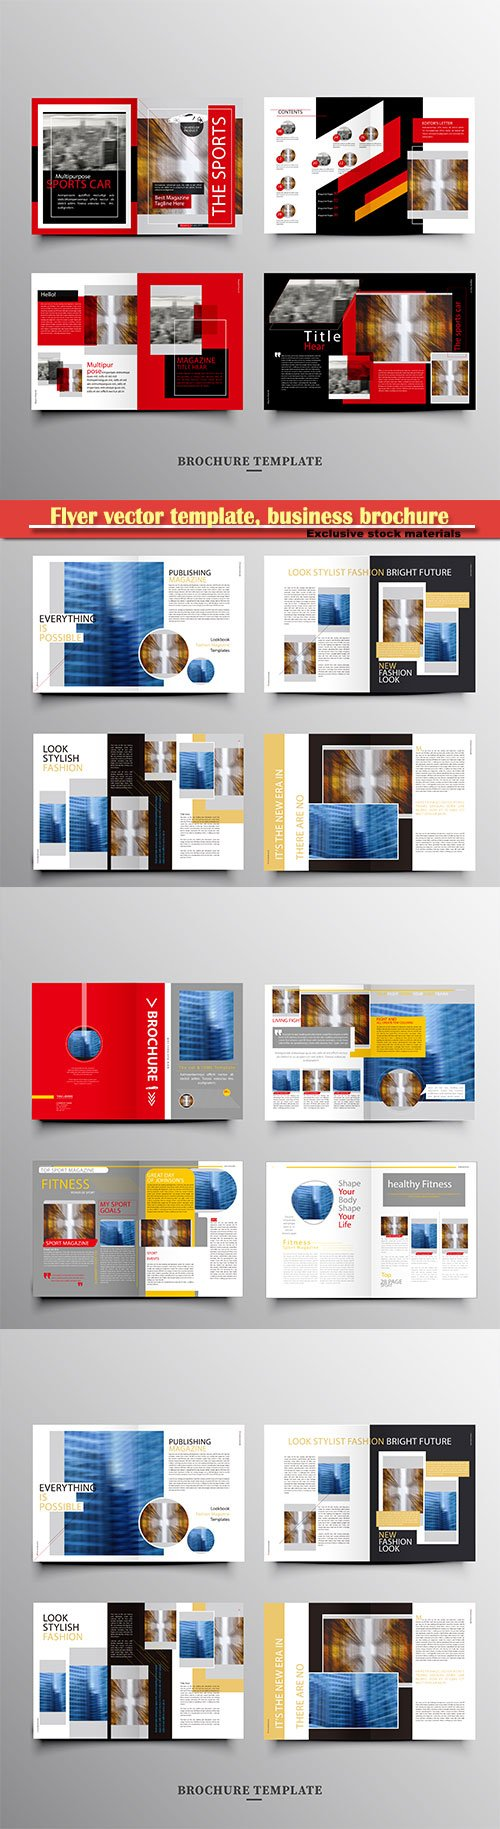 Flyer vector template, business brochure, magazine cover # 31